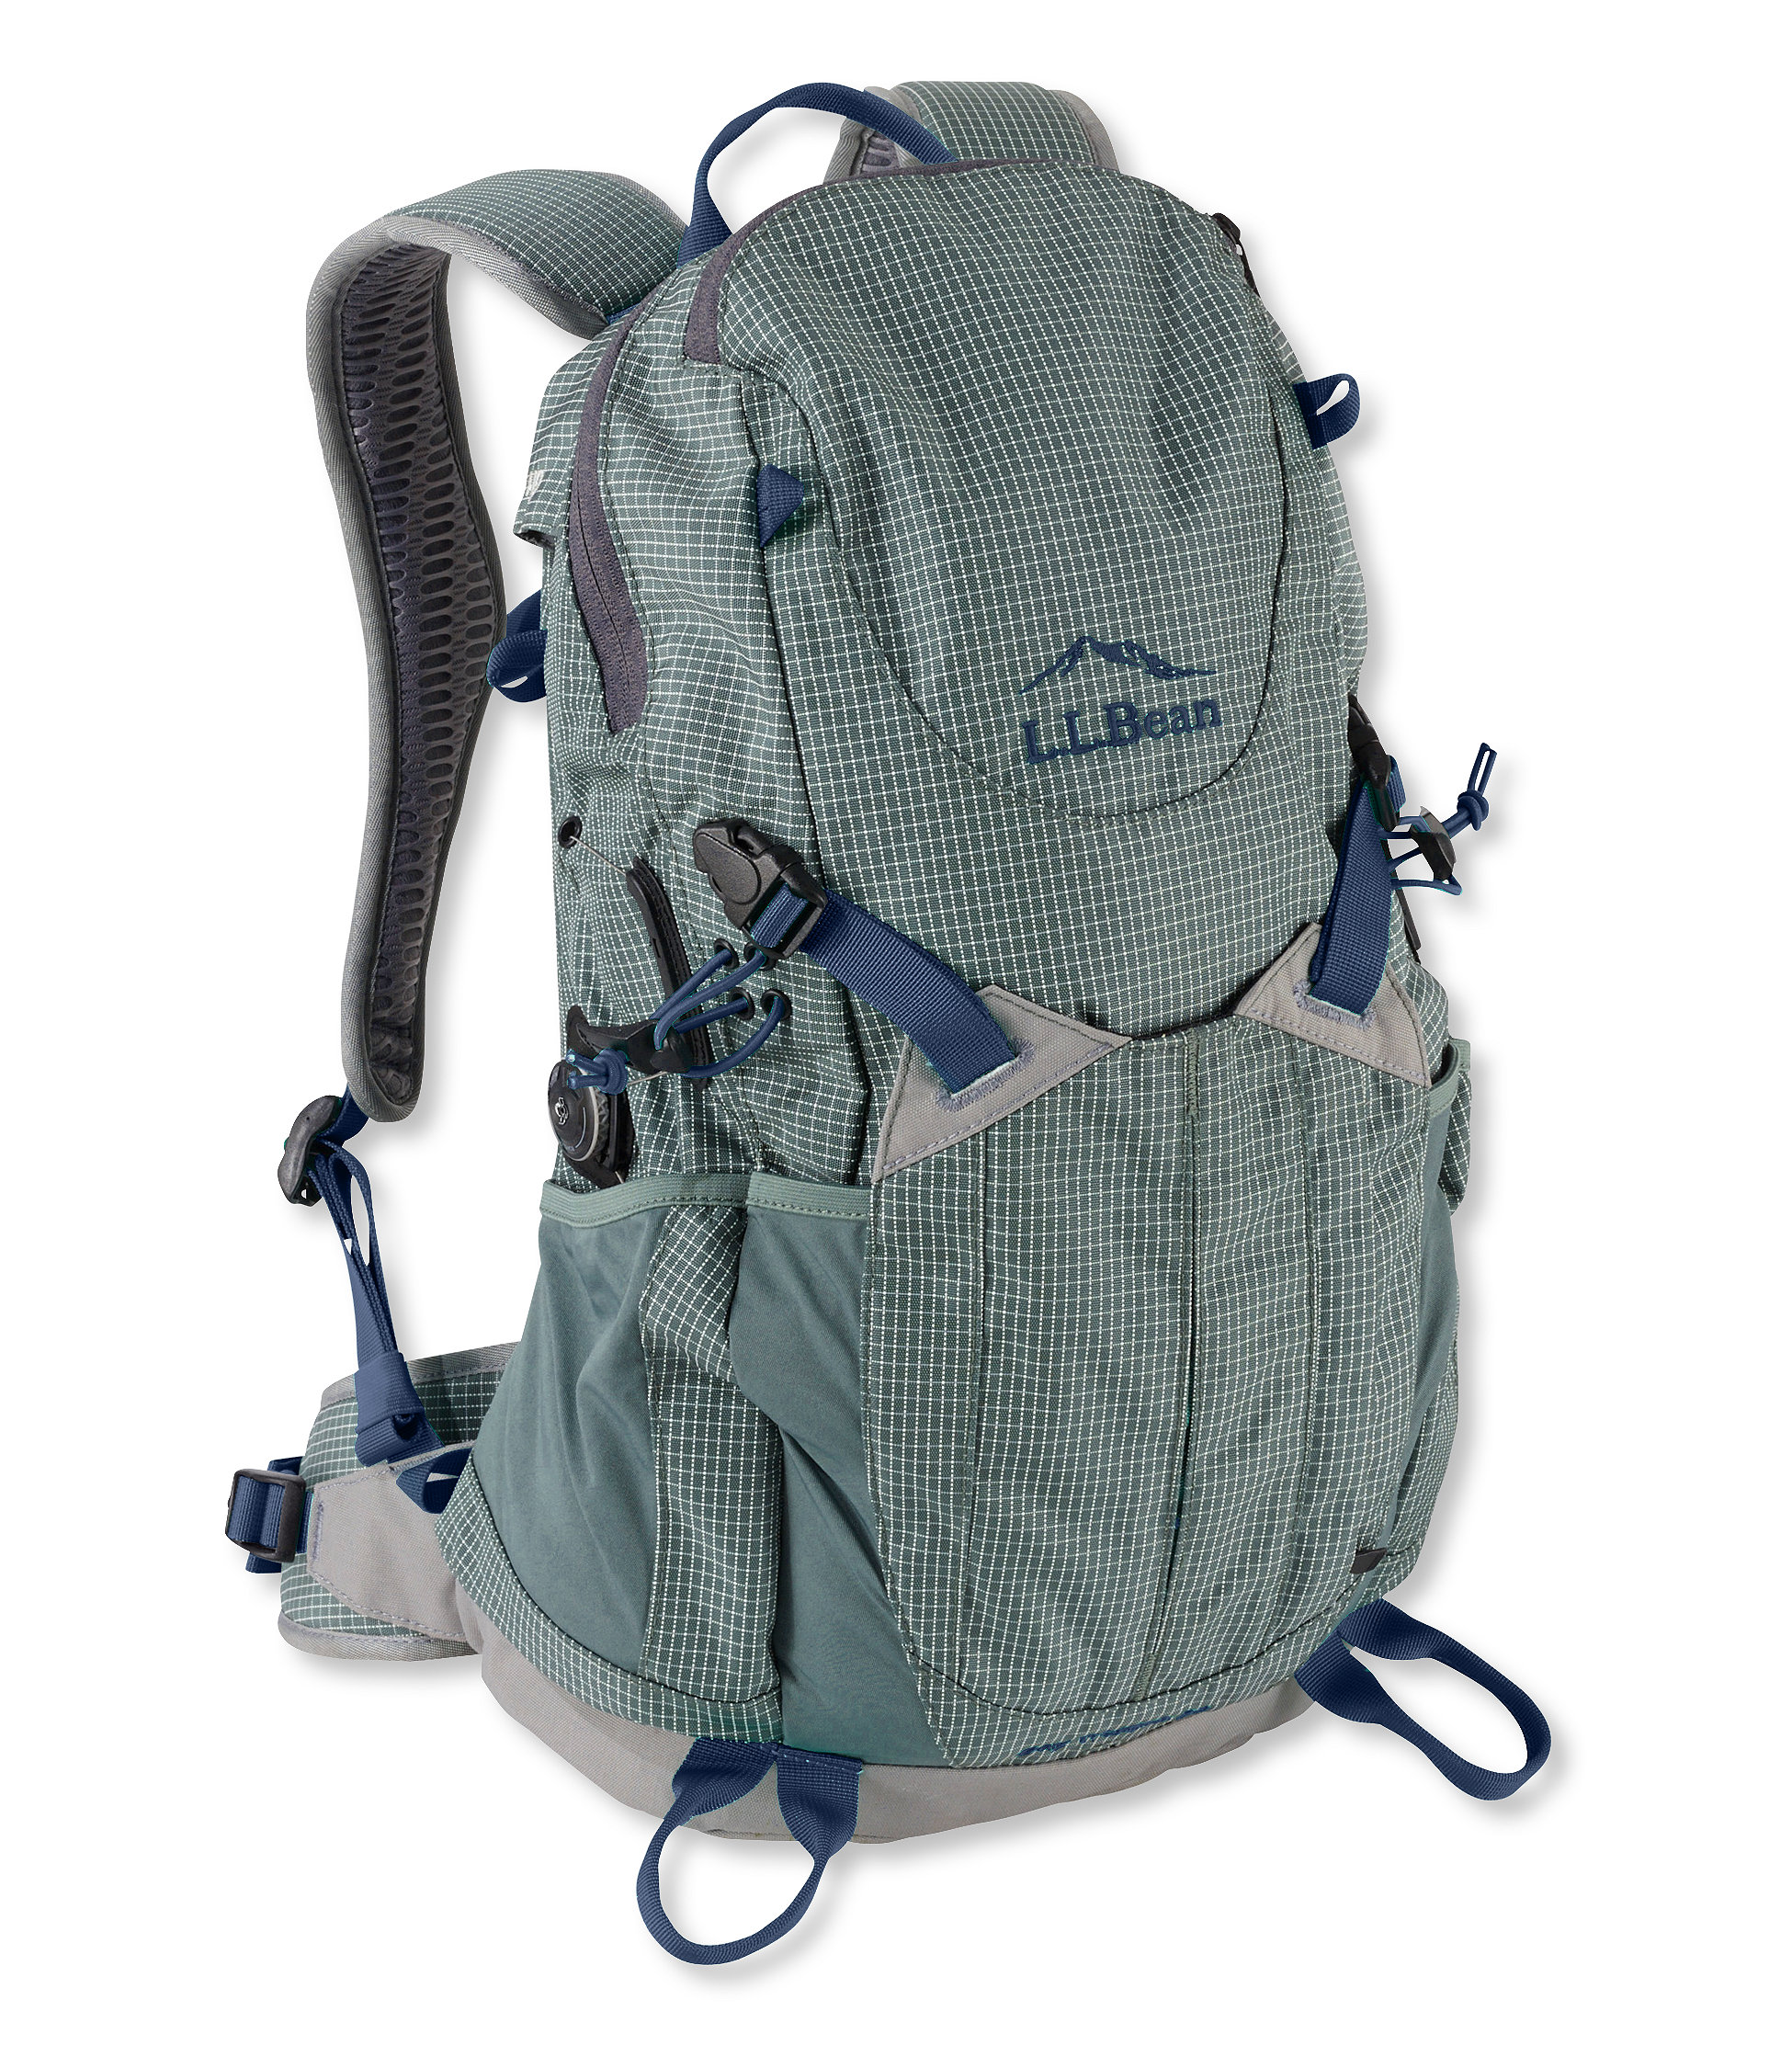 L.L.Bean Day Trekker Day Pack